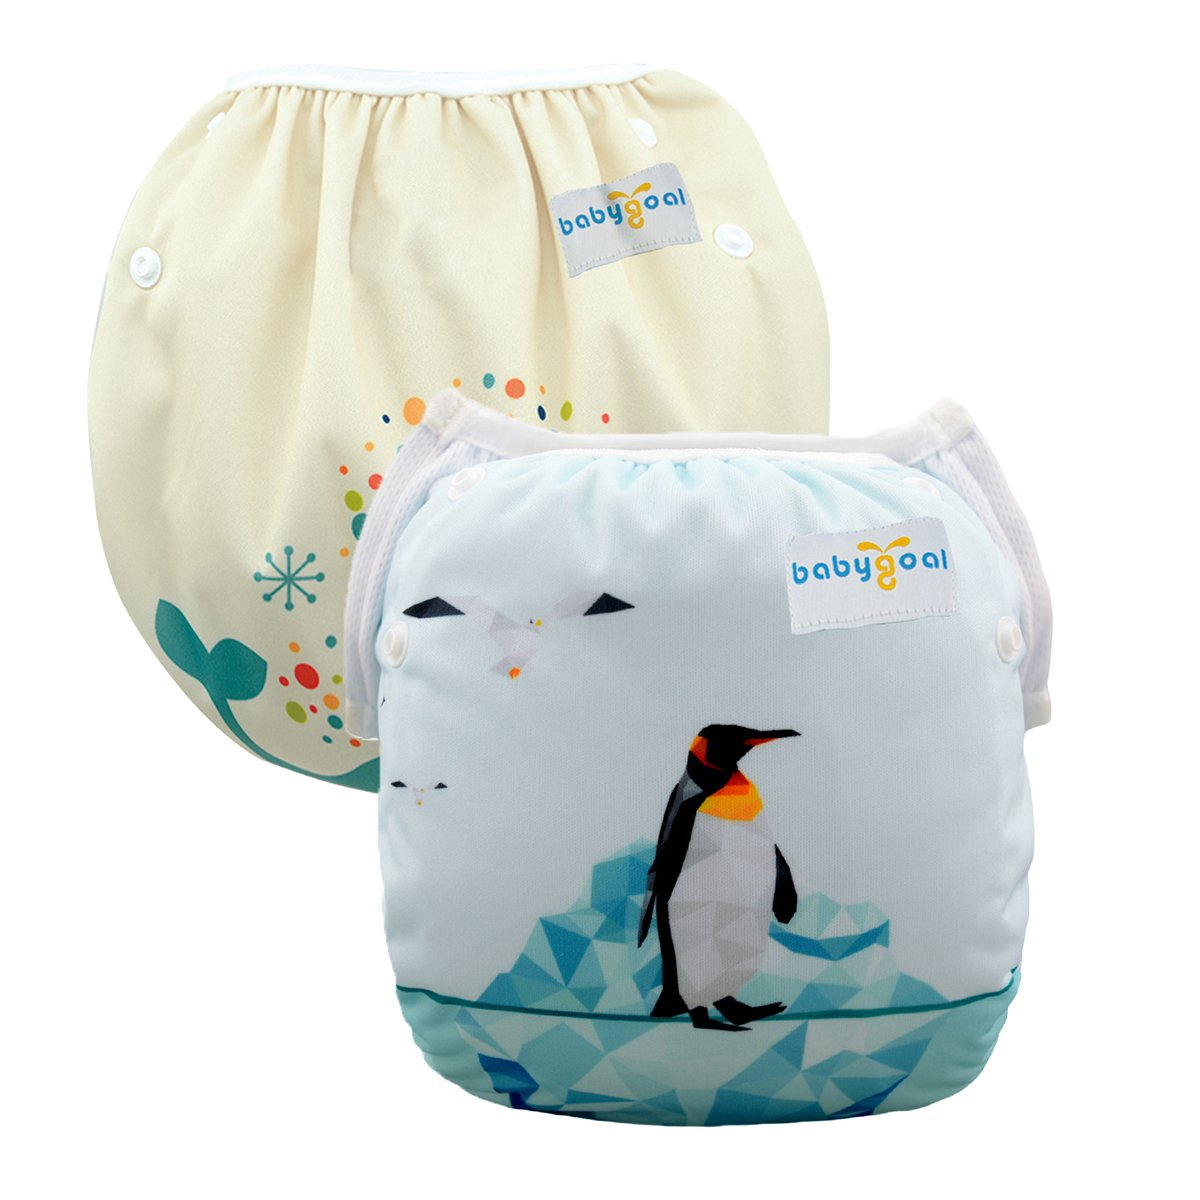 Babygoal Baby Swim Diapers, Reusable Washable and Adjustable for Swimming, Outdoor Activities and Daily Use, Fit Babies 0-2 Years 2SWD0112 Huapin 2SWD0112-CA